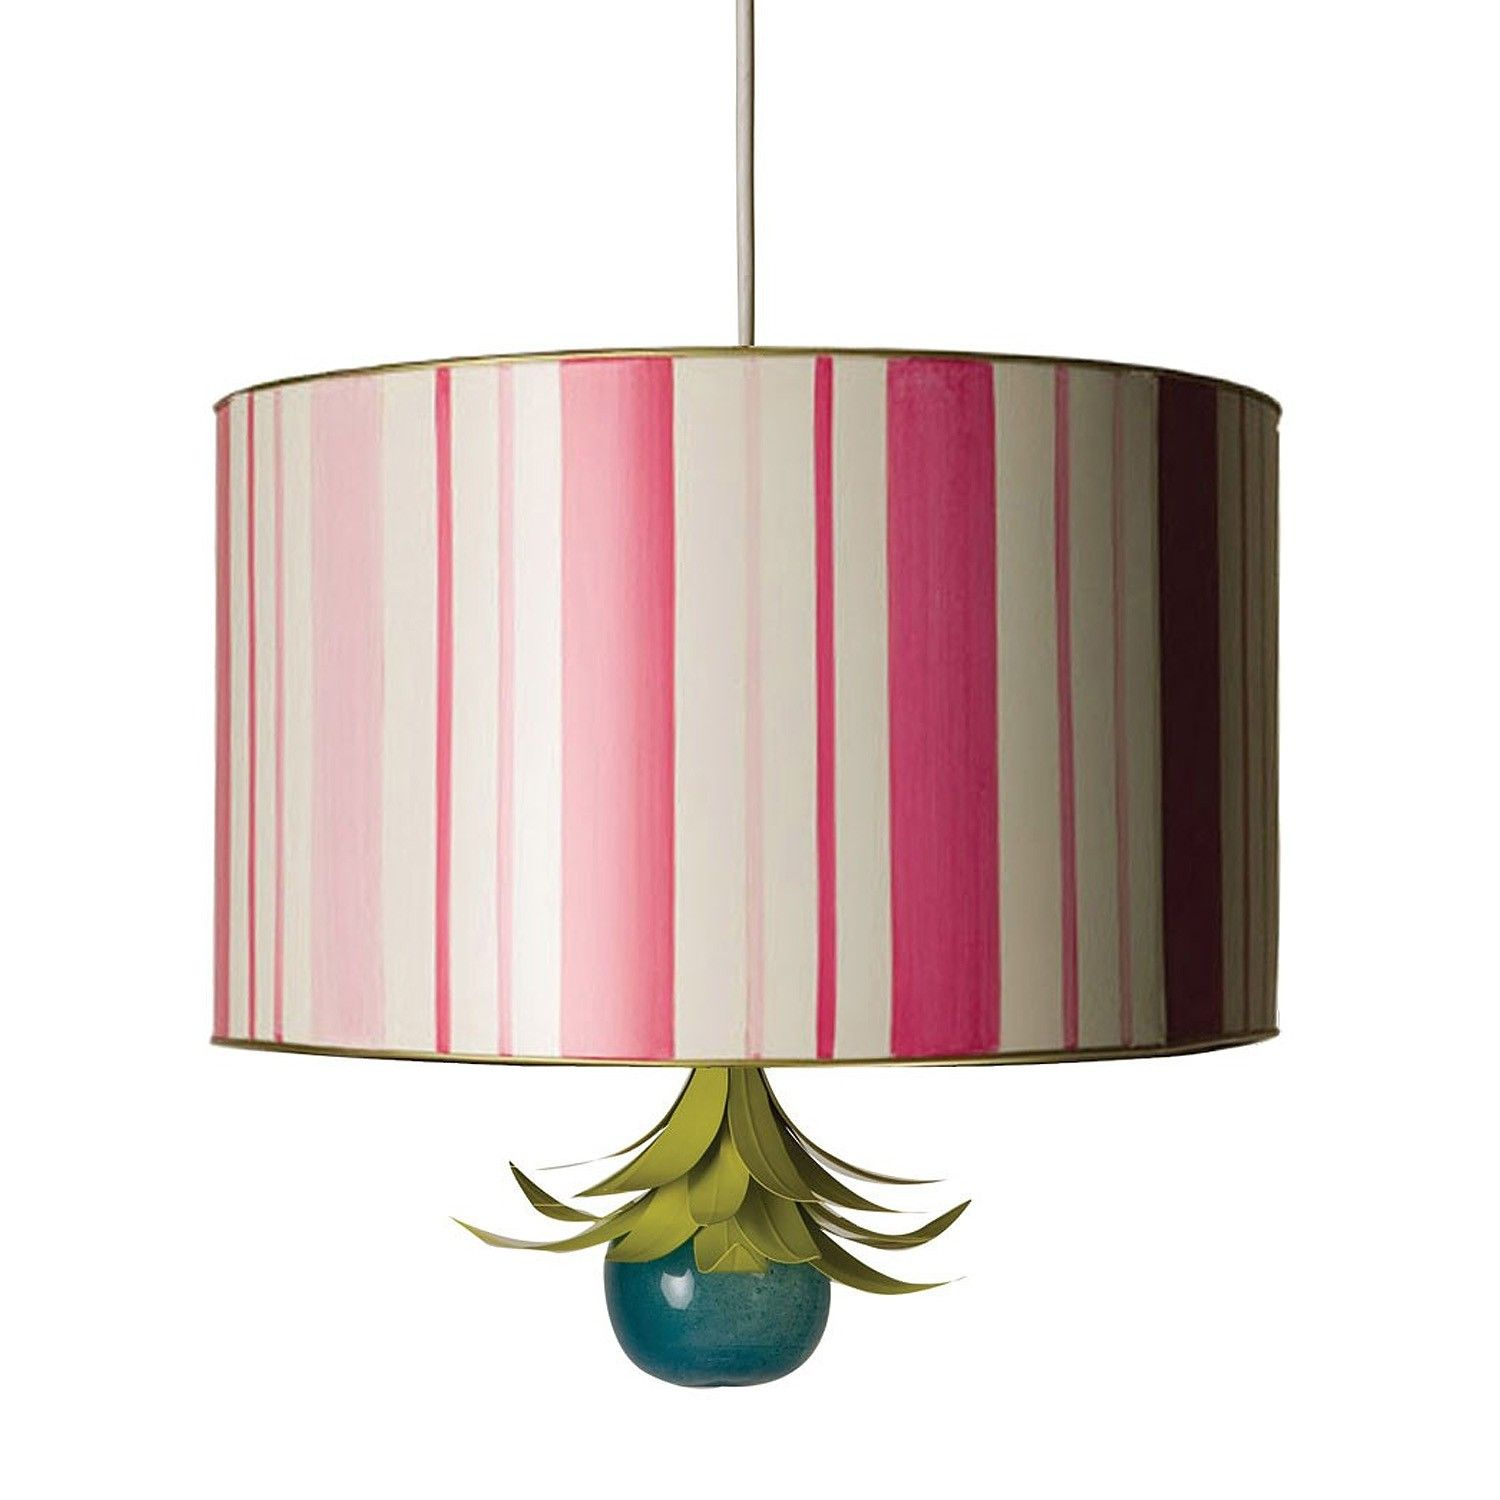 A Glamorous Pendant With A Dazzling Frou Frou Finial The Shade Is Handcrafted Hand Painted Tole The Adorabl With Images Drum Shade Coastal Pendant Lighting Drum Pendant